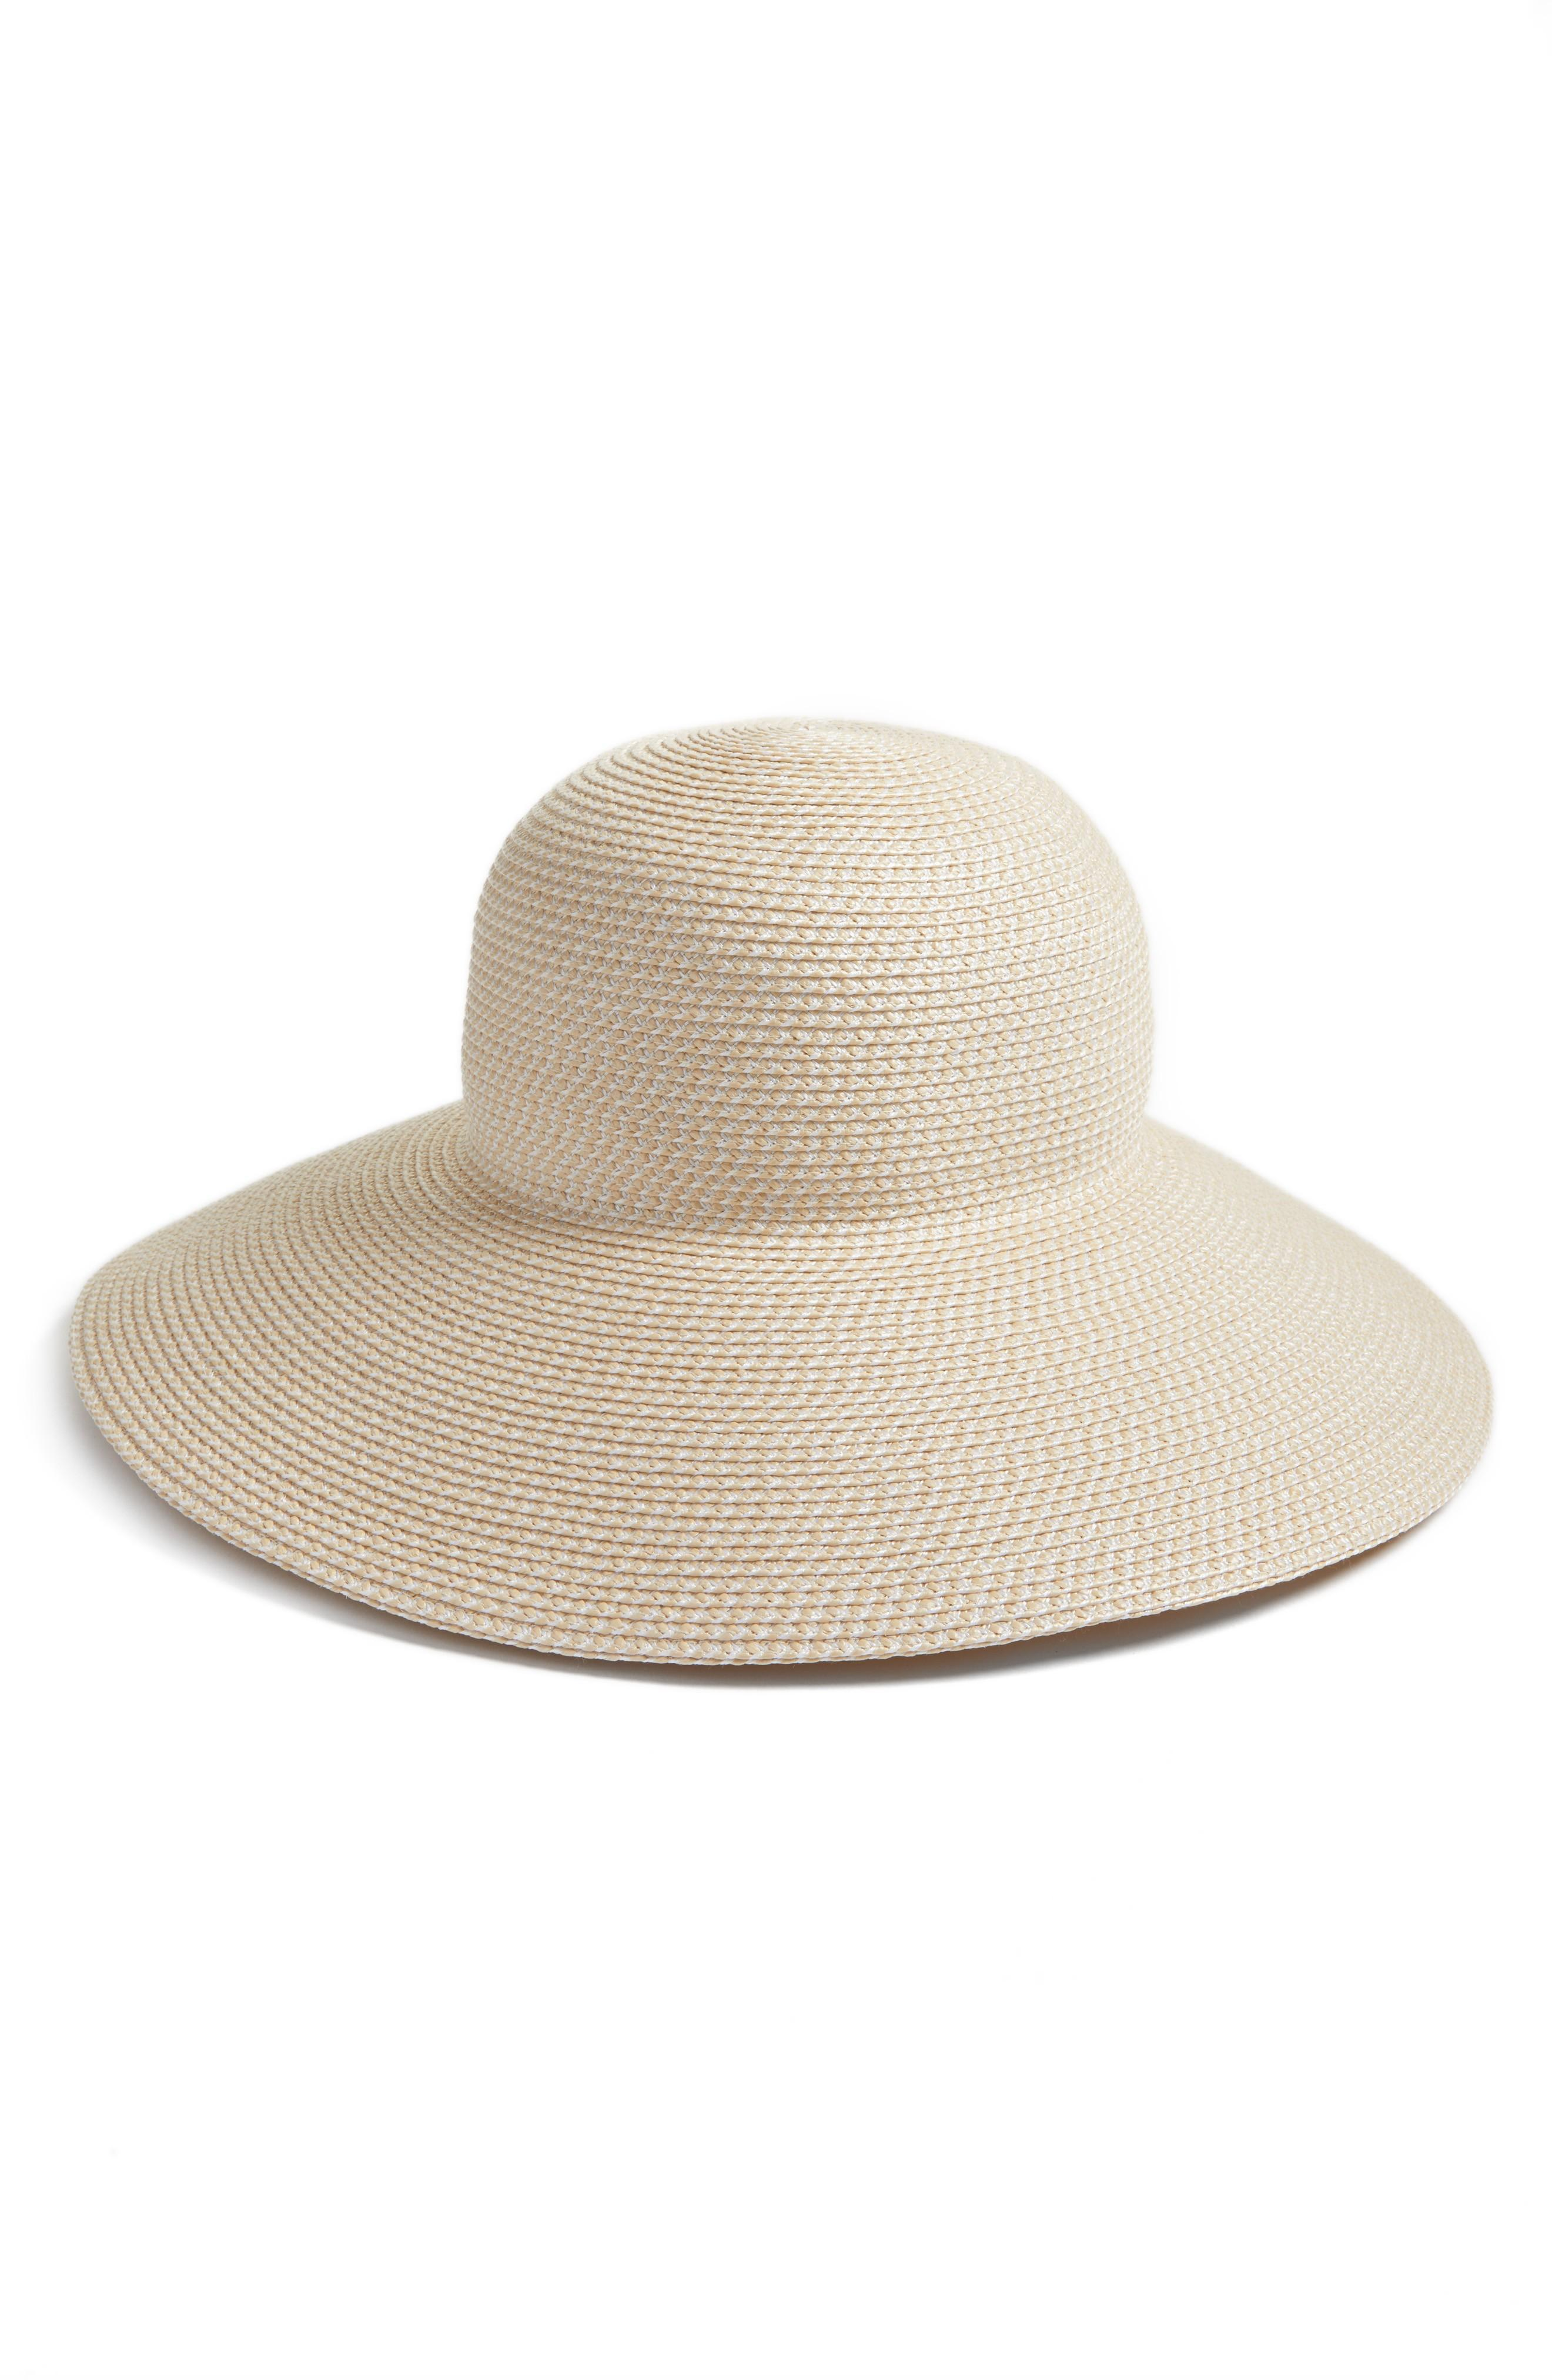 8f5596681d7346 Eric Javits 'Hampton' Straw Sun Hat In Cream | ModeSens